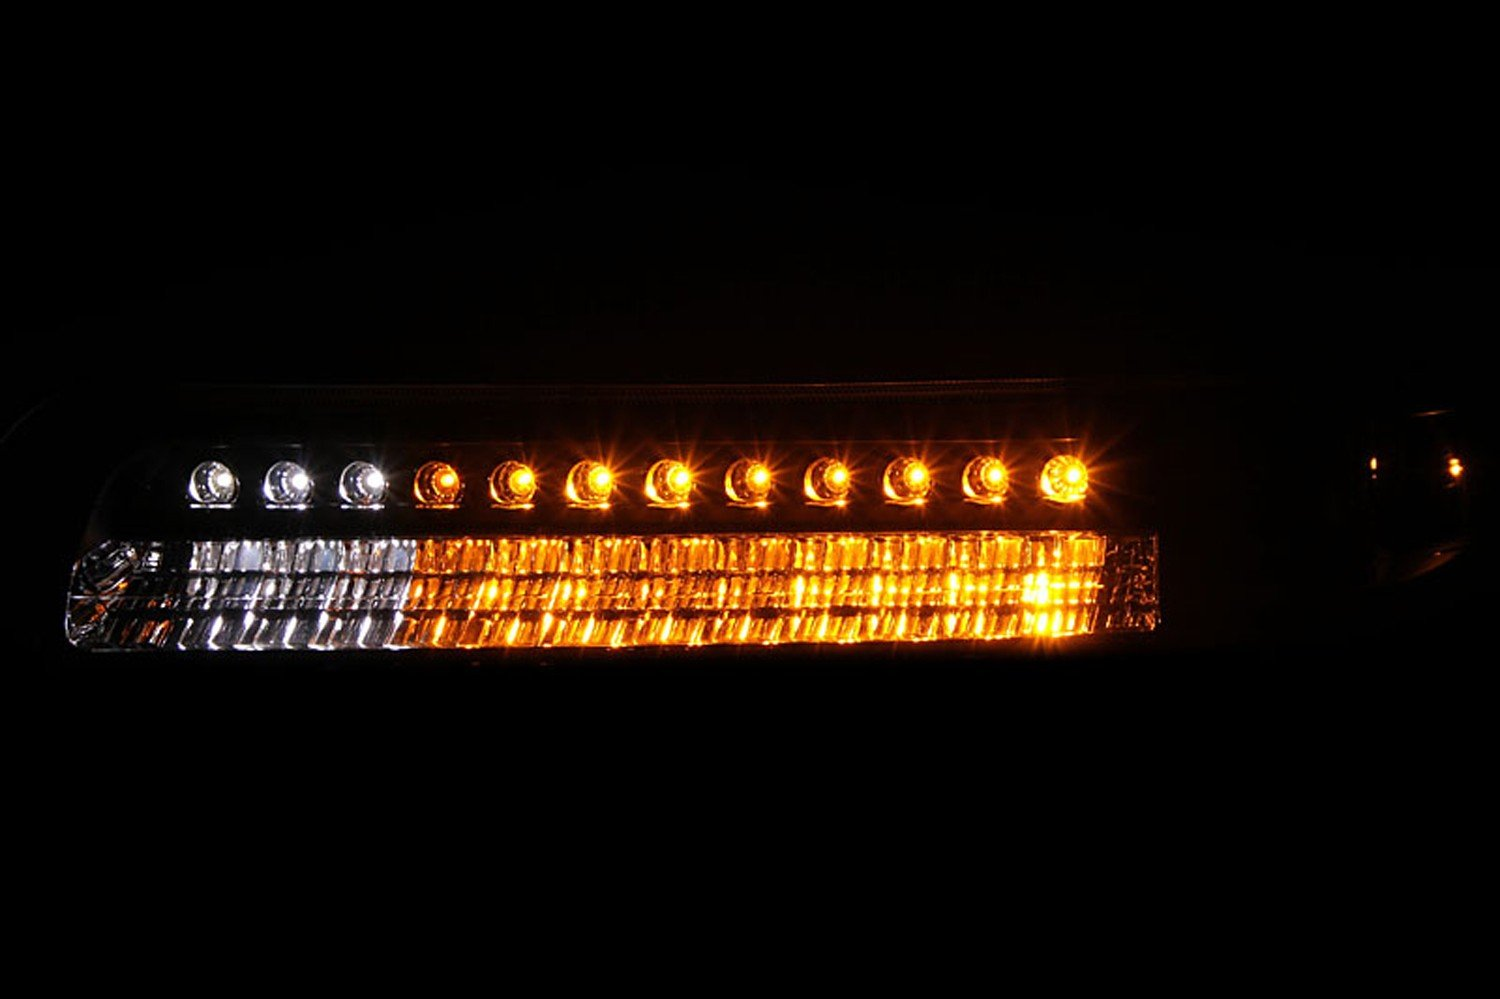 HEADLIGHTSDEPOT LED Signal Light Compatible with Chevrolet Silverado 1500 2500 3500 Suburban Tahoe 1999-2006 Includes Left Driver and Right Passenger Side Signal Lights with Smoke Lens